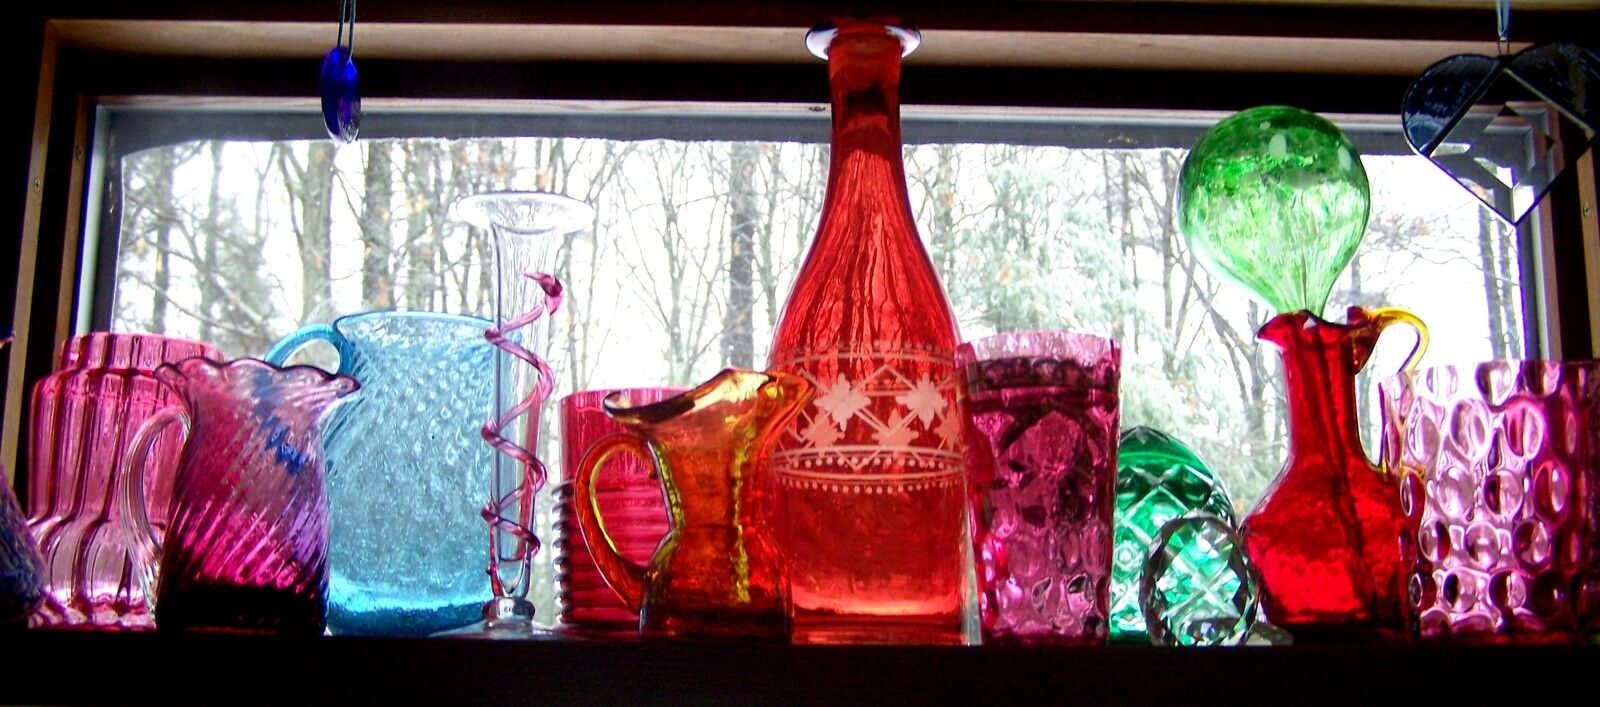 JANET S GLASS & MORE....